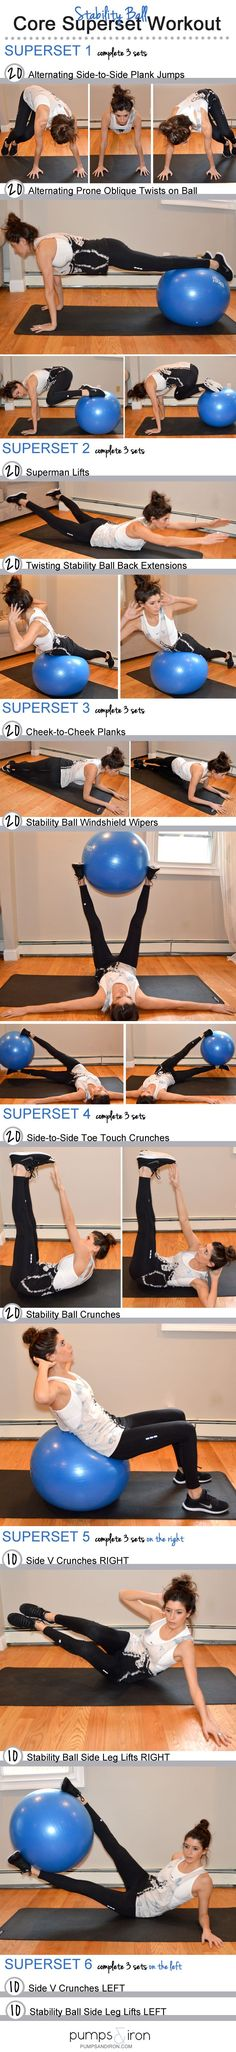 An excellent stability ball core workout with many powerful exercises  #abworkout #abexercises #fitness